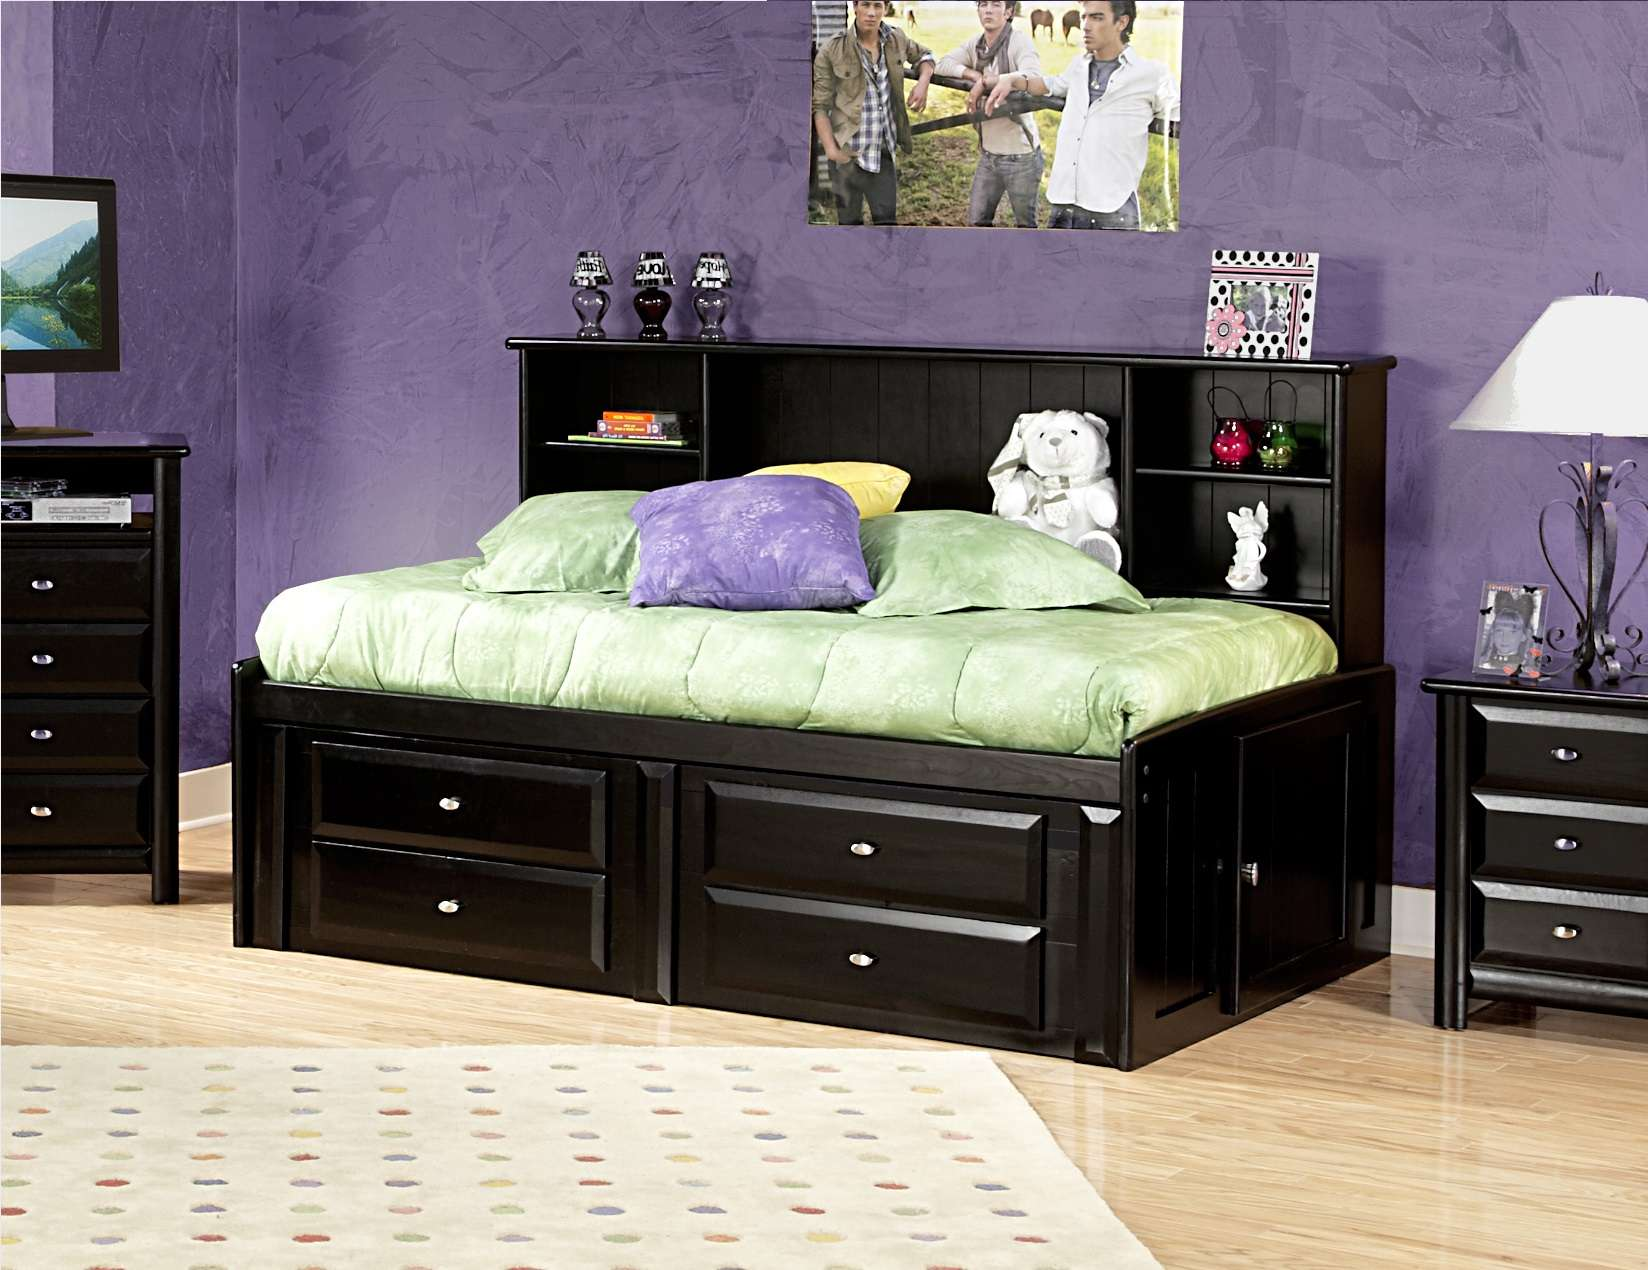 Chelsea Home Black Cherry Twin Storage Bed With Bookcase Headboard